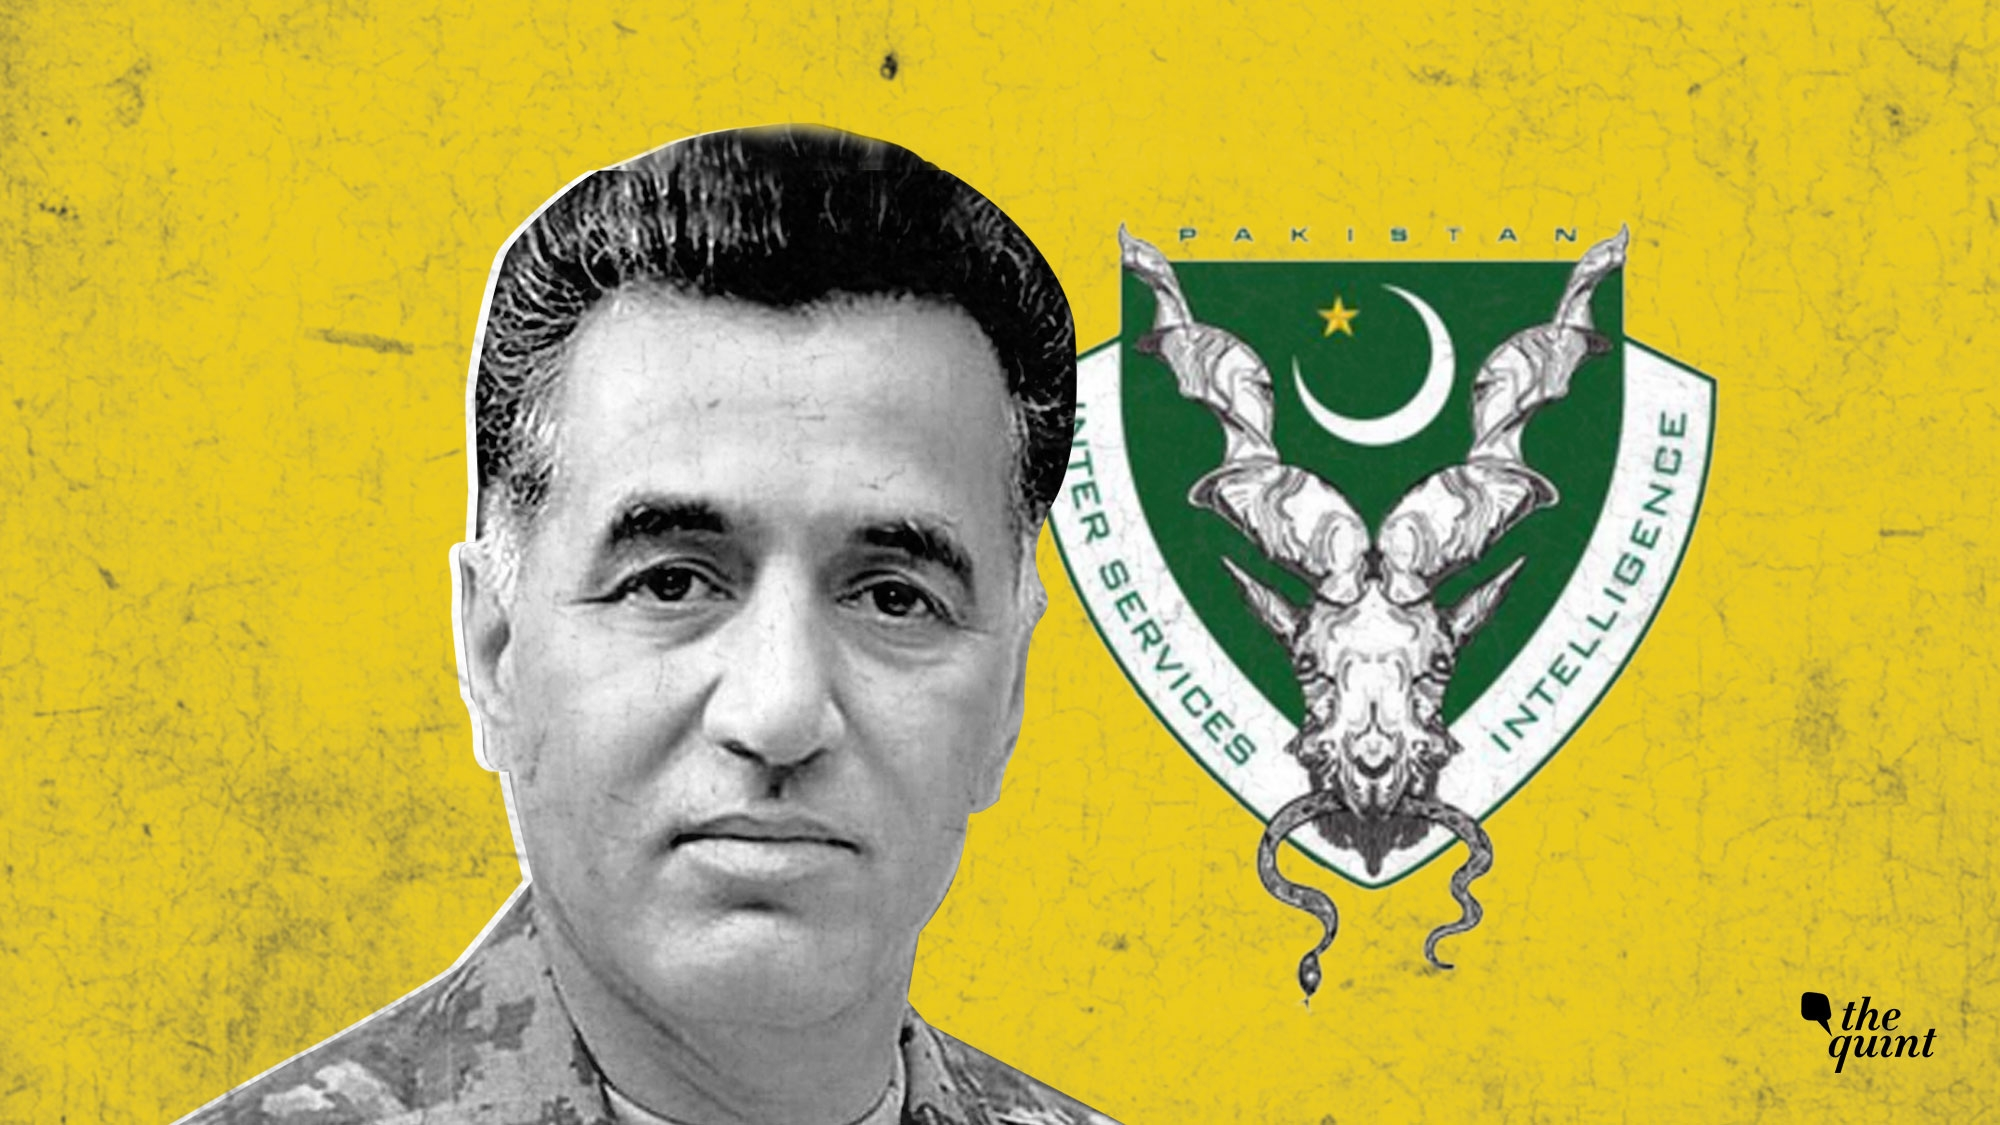 Why Did Pakistan Appoint A Controversial Figure As New Spy Chief?